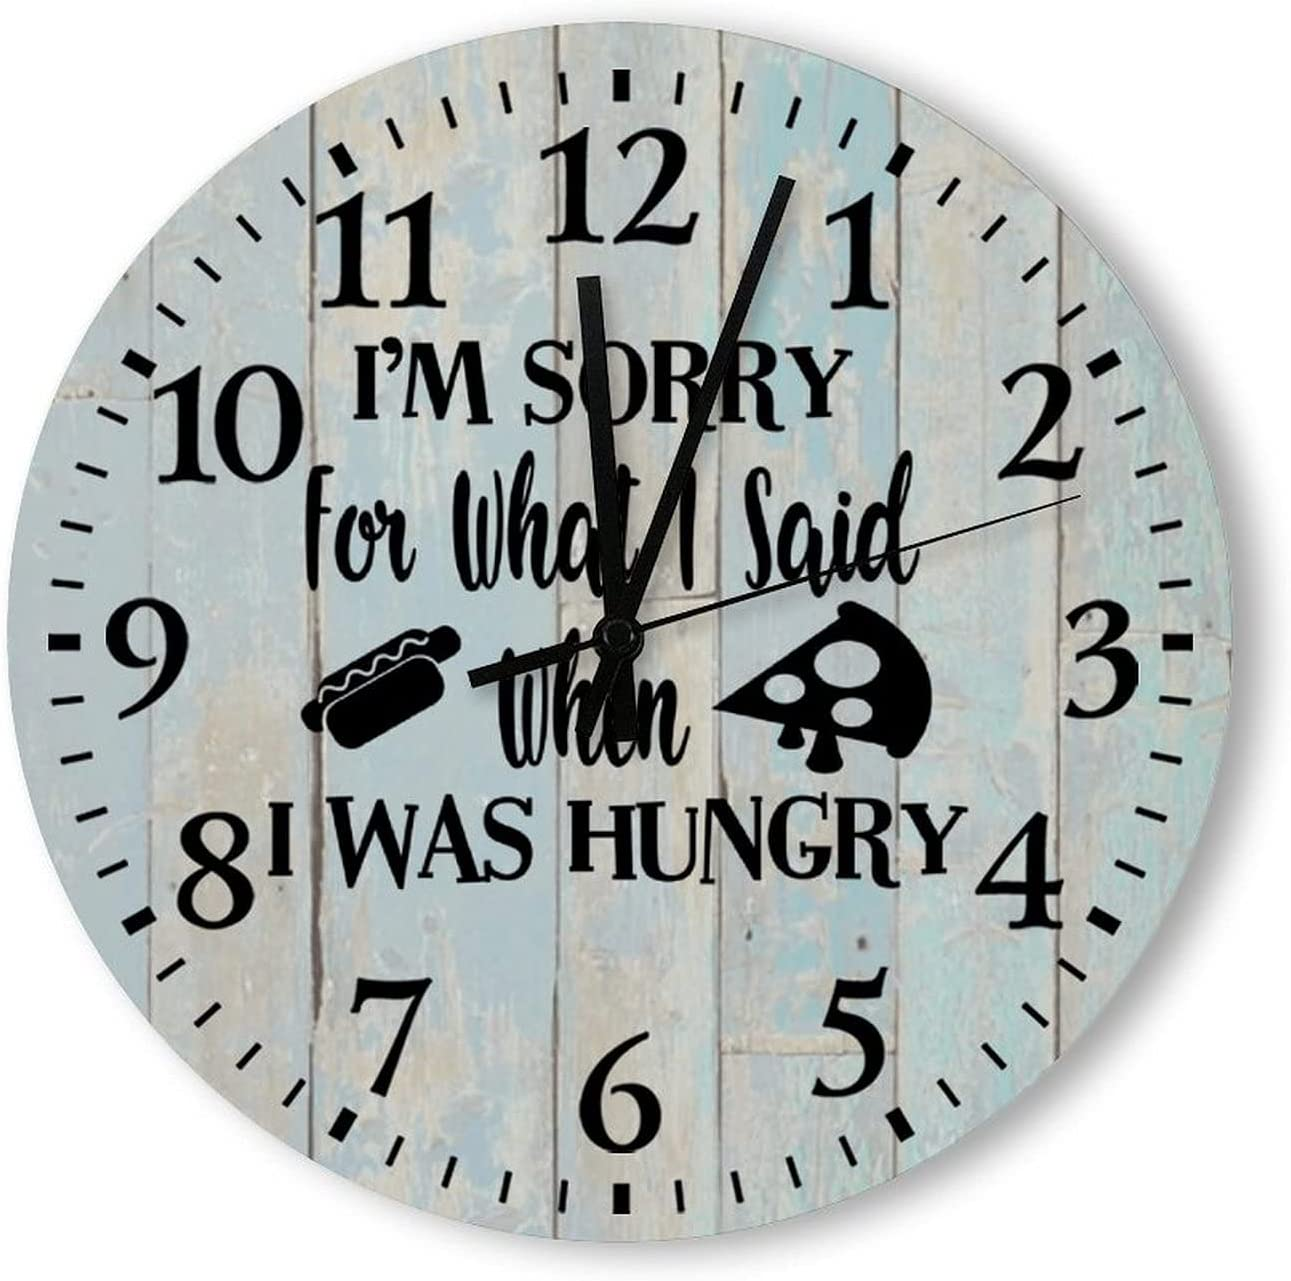 Free Brand Retro Wooden Wall Clock 12 Inch, I'm Sorry for What I Said When I was Hungry, Noiseless Round Battery Operated Men Women Home Decor Gift